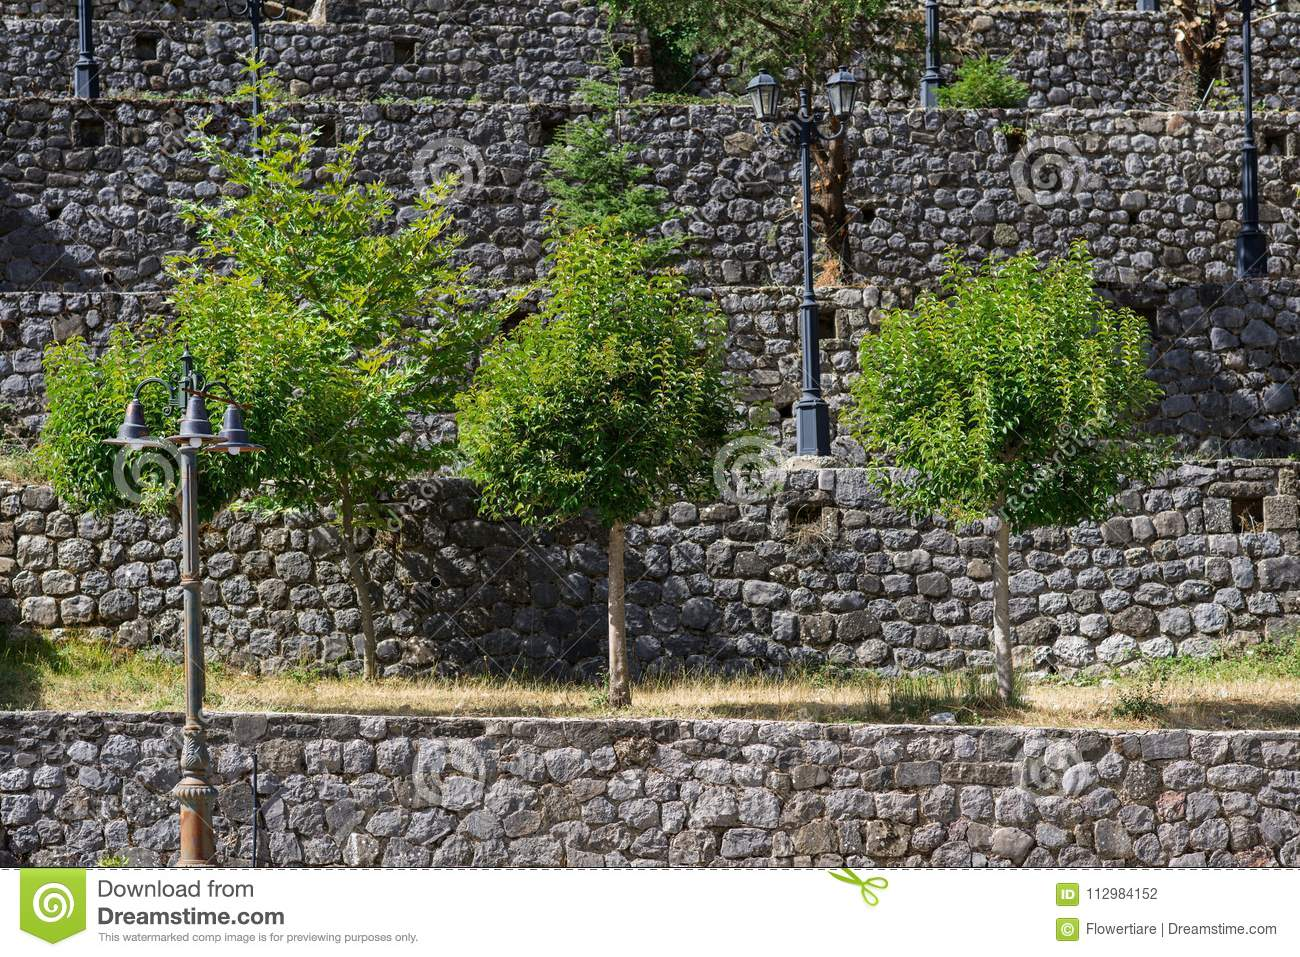 Background of a brick wall with trees and lanterns